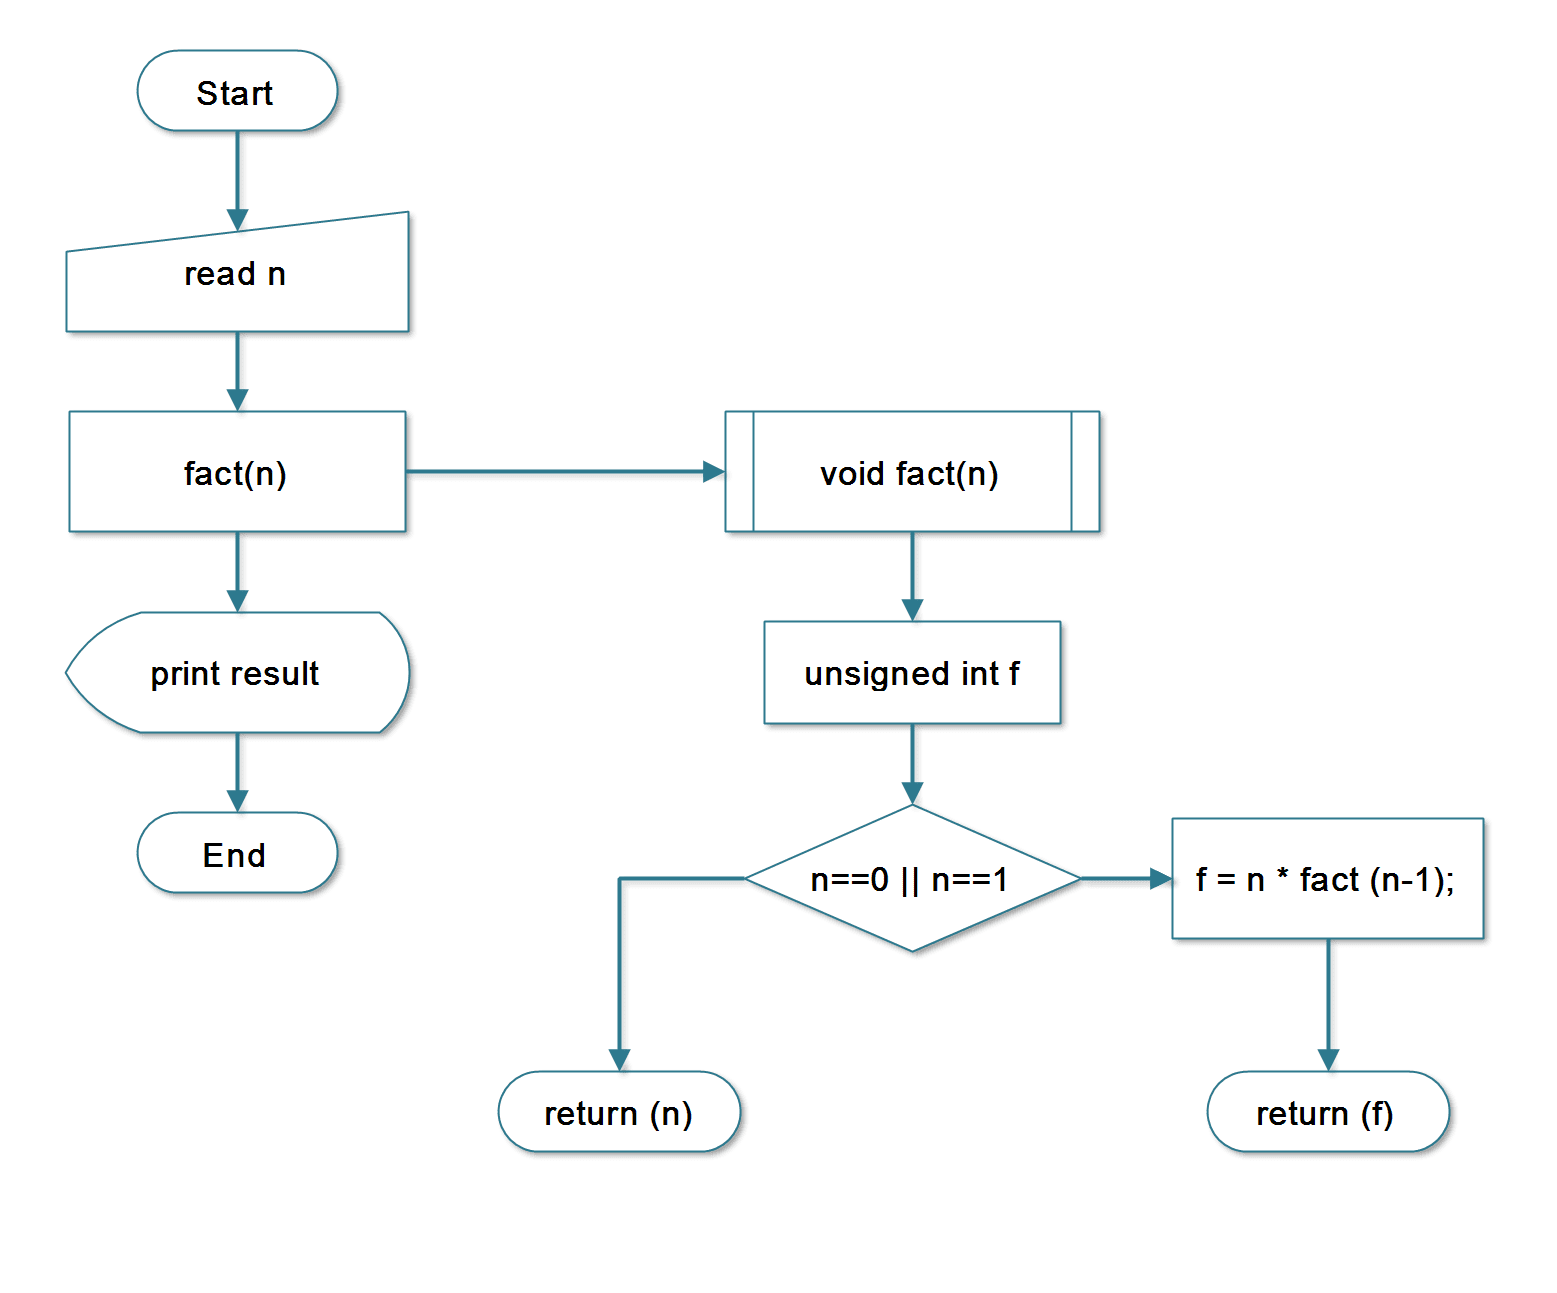 hydrological cycle diagram c program for solving quadratic flowchart of water cycle cell phone schematic diagram - C Program Flowchart